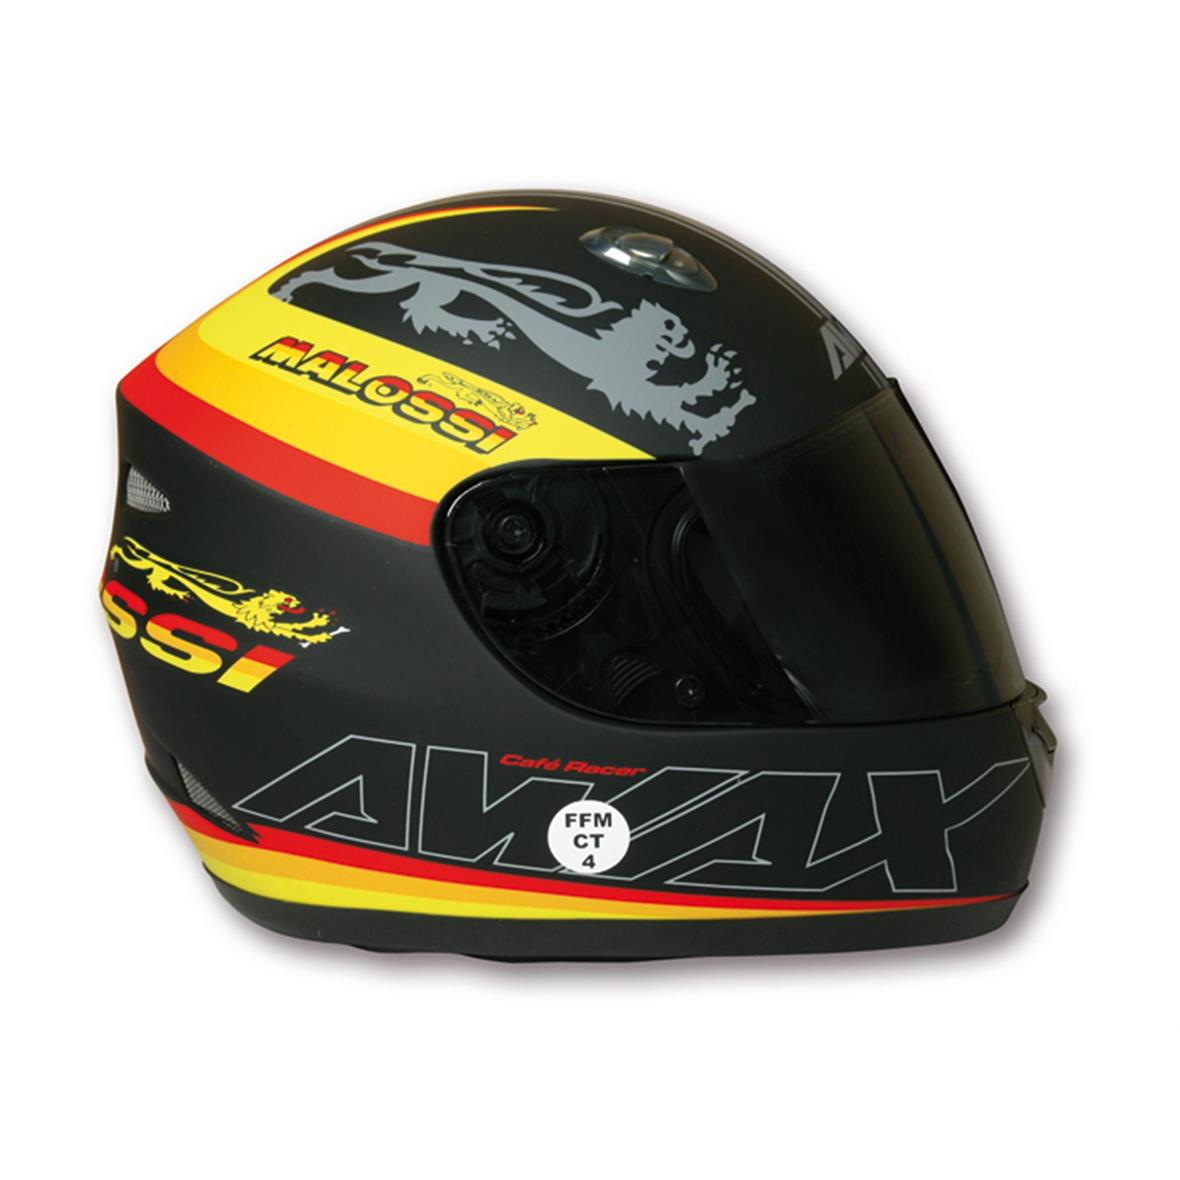 """Product Image for 'Helmet MALOSSI Full Face """"Café Racer Malossi""""Title'"""